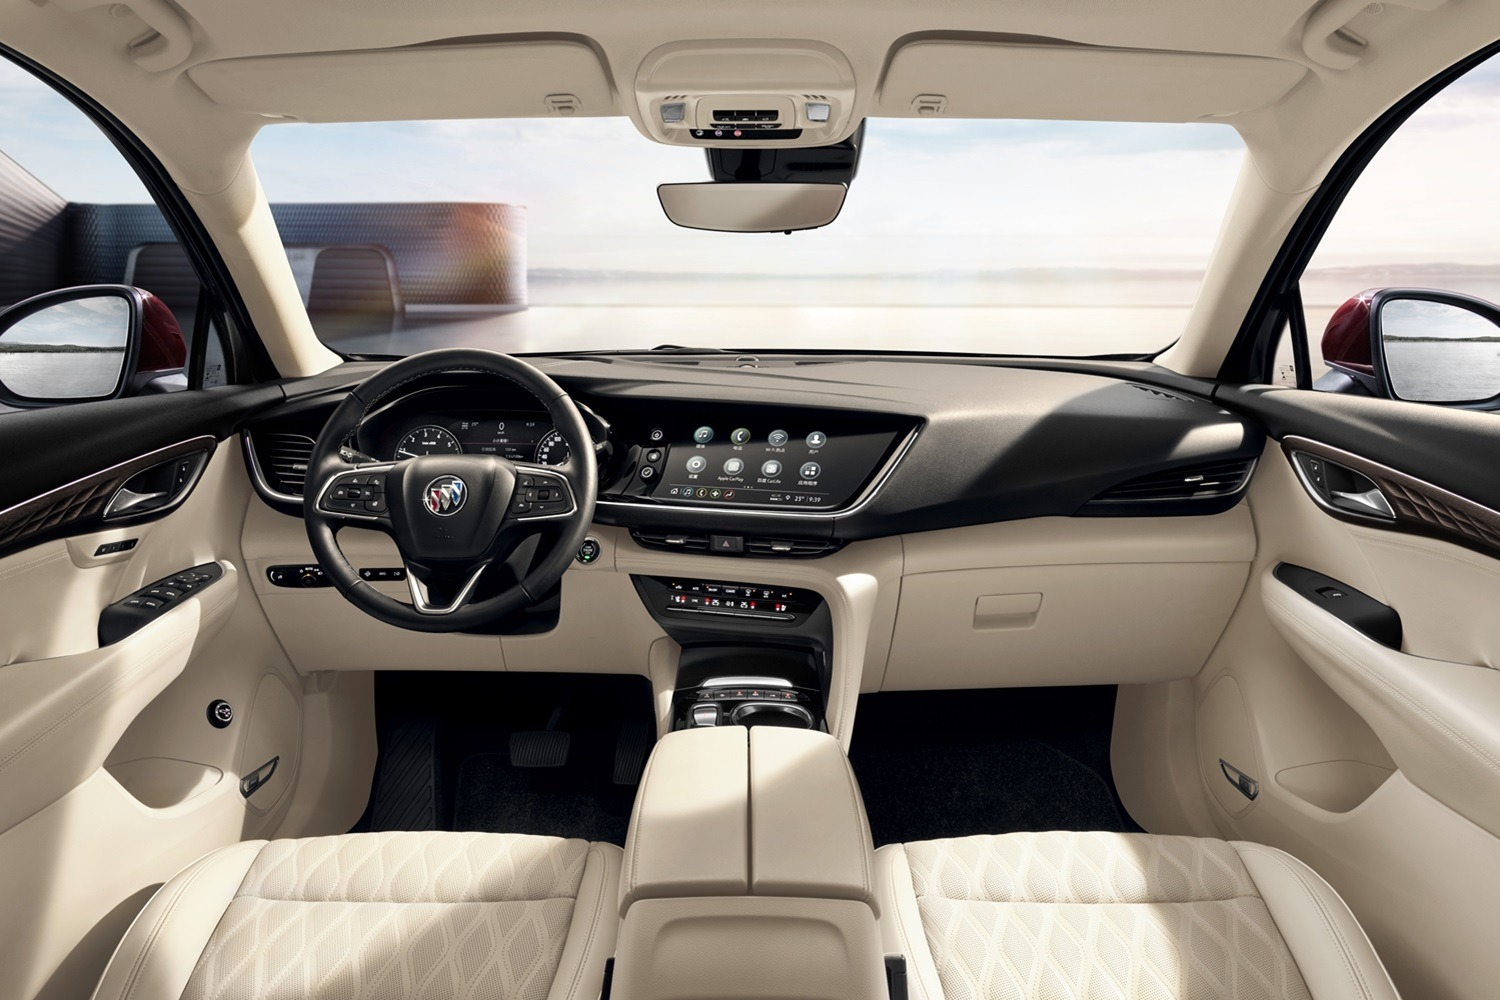 2021 Buick Envision Interior Revealed In Brand New Photos 2022 Buick Envision Interior Photos, Engine, Length